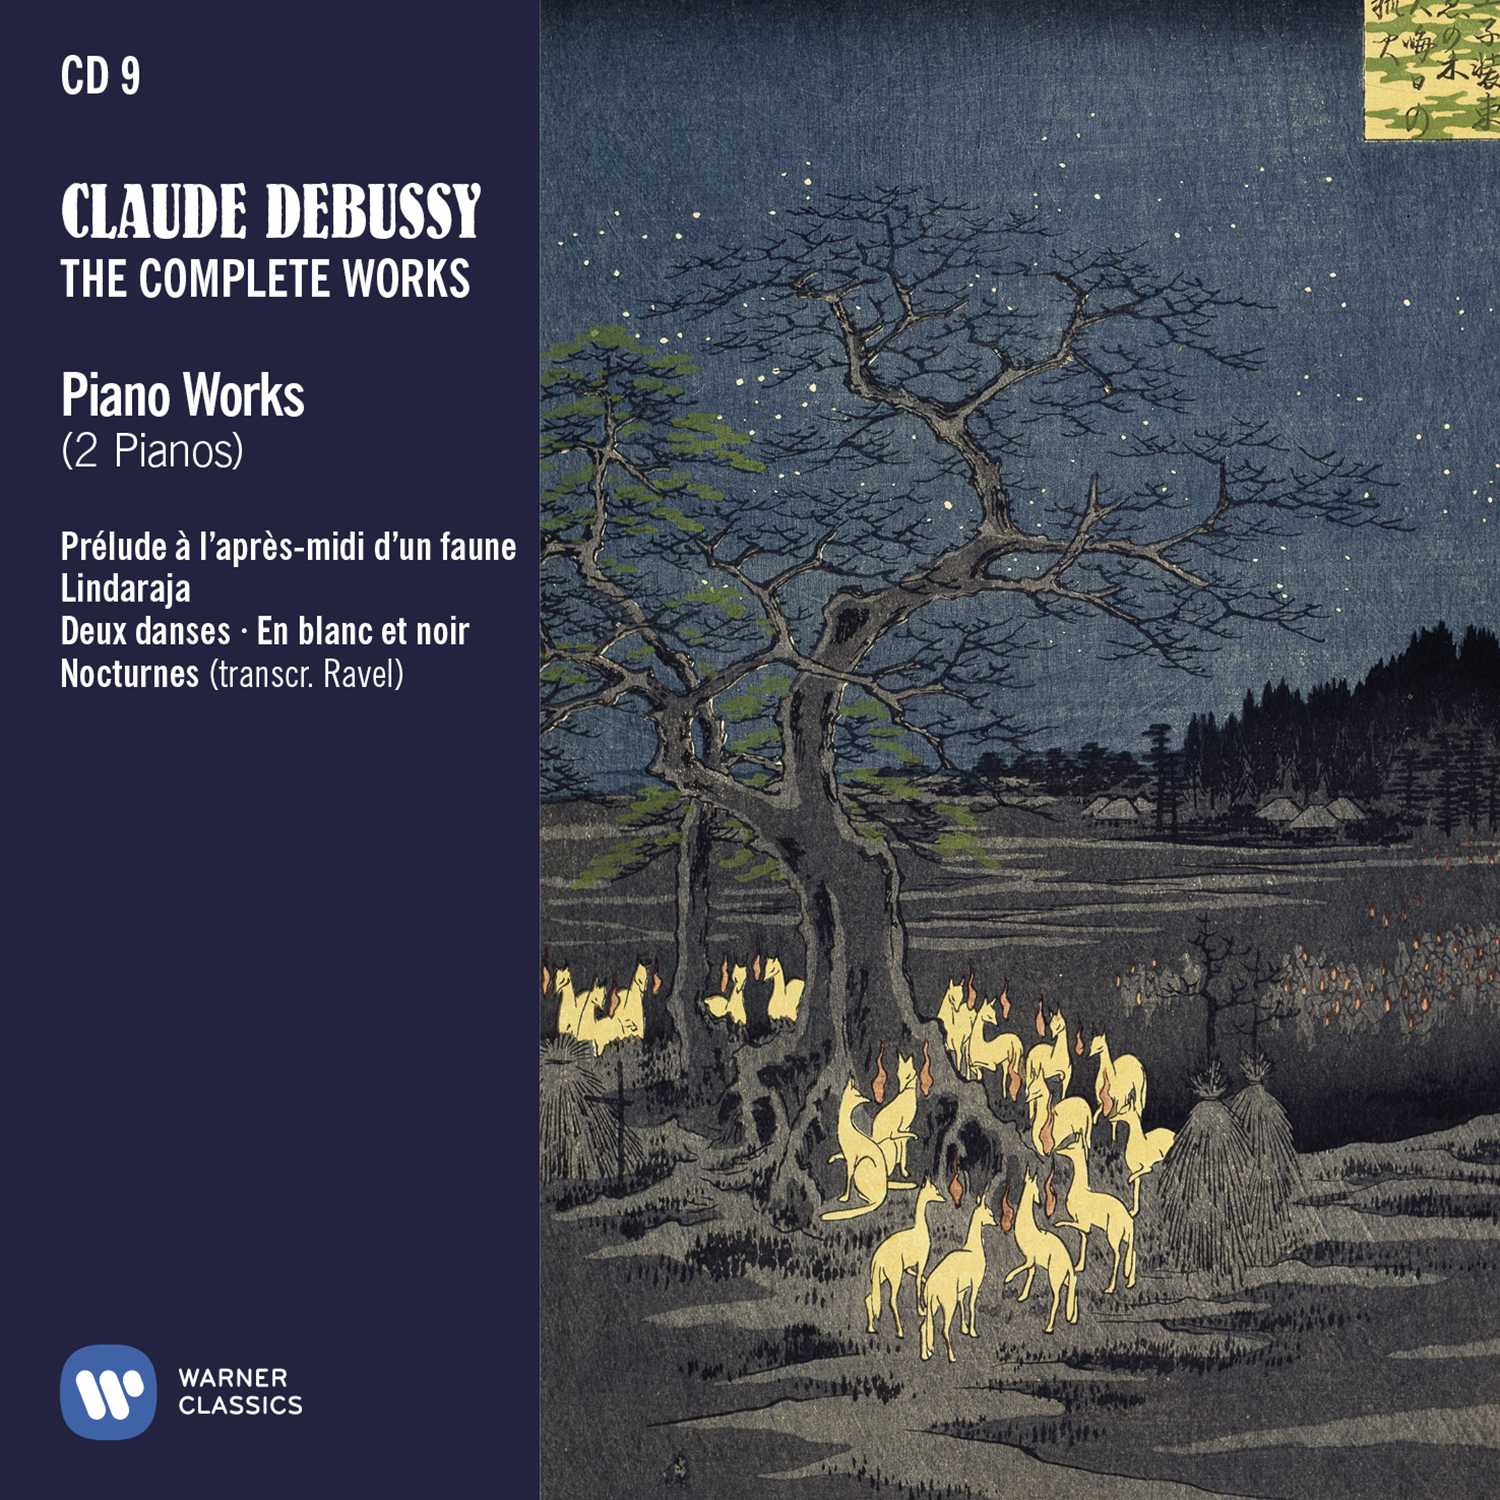 Debussy The complete works - Cover wallet CD9.jpg